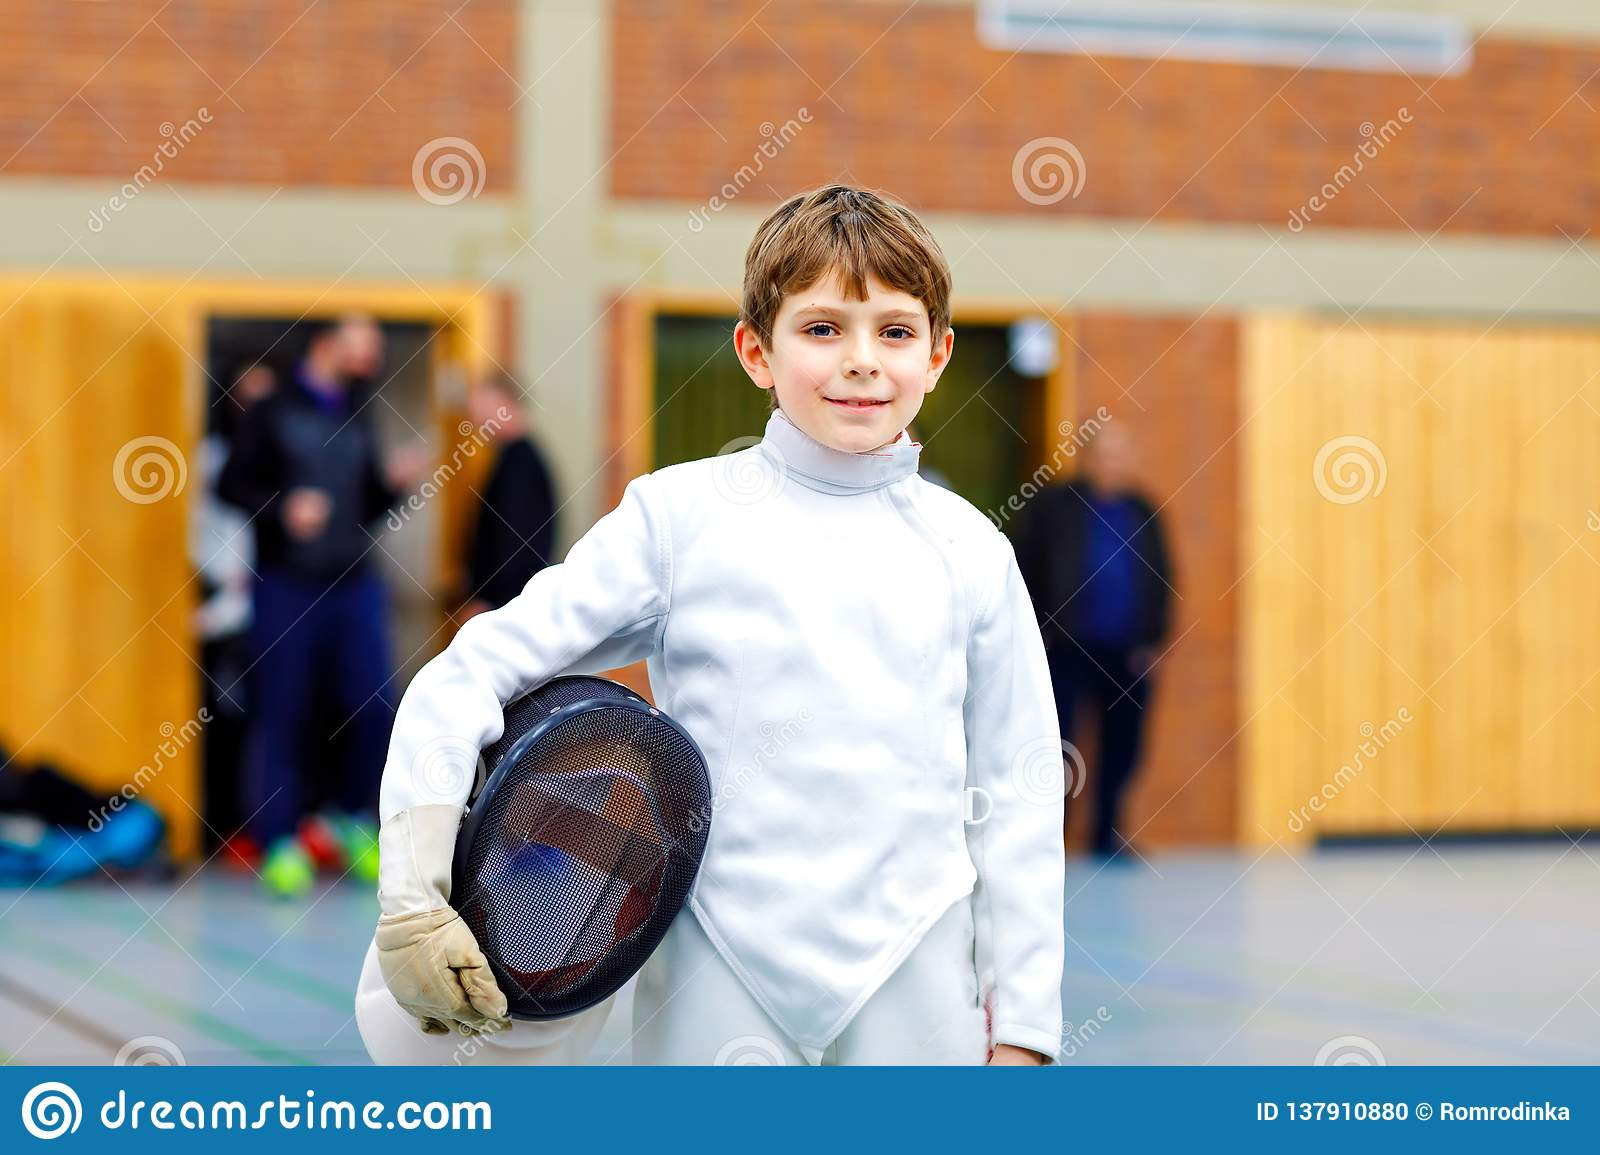 Little kid boy fencing on a fence competition. Child in white fencer uniform with mask and sabre. Active kid training